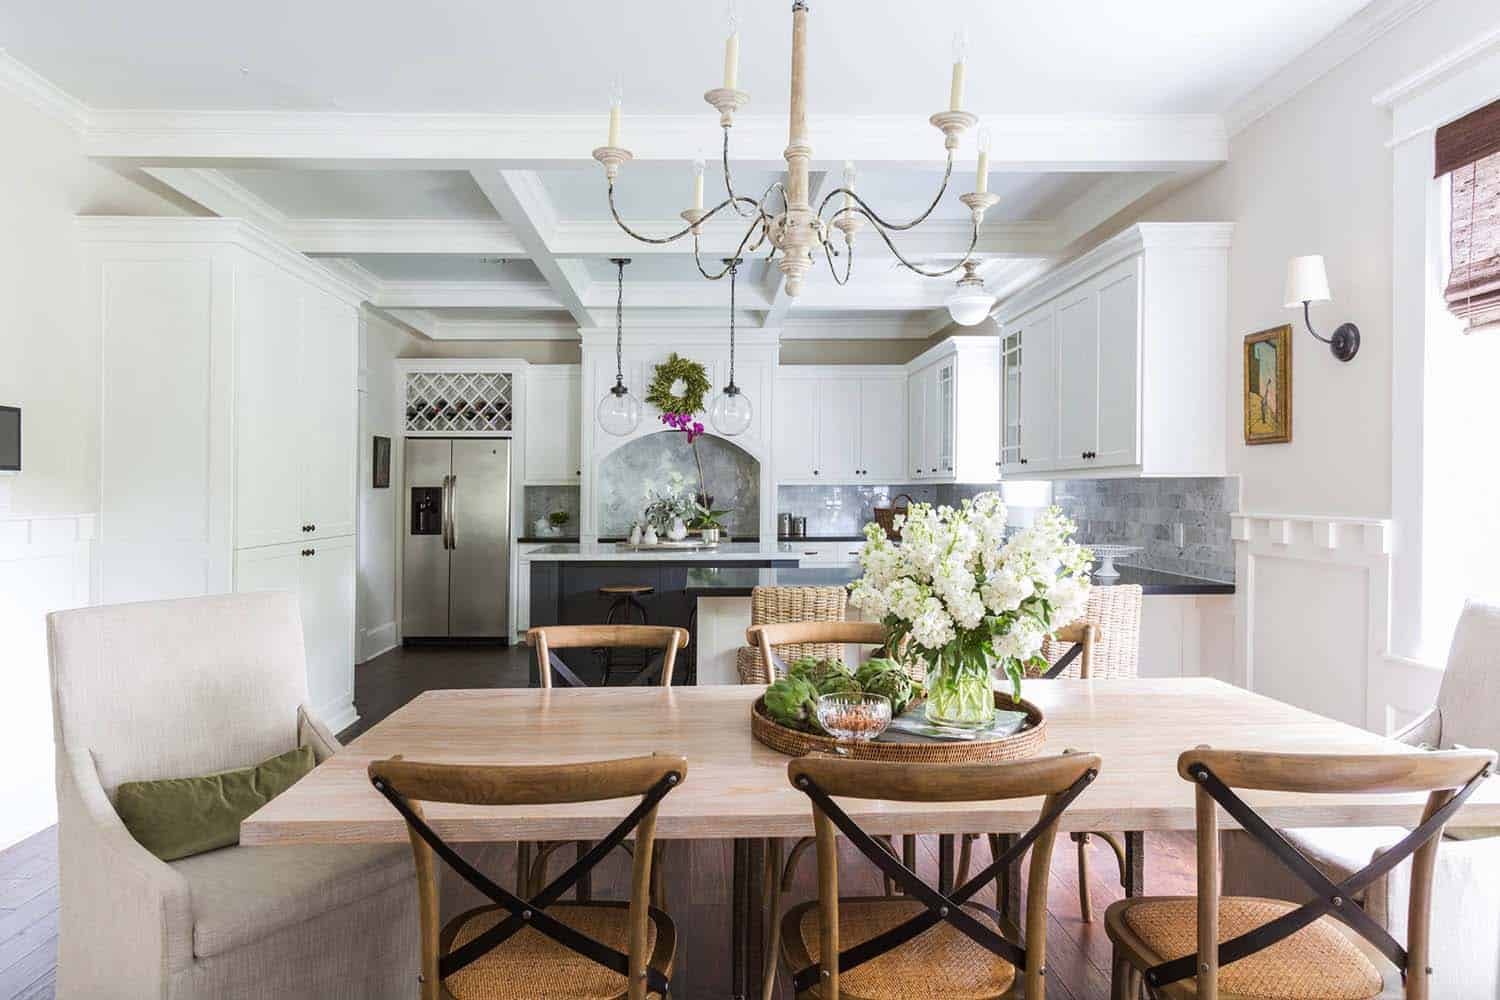 Bungalow de Style Traditionnel-Marie Flanigan Interiors-08-1 Kindesign